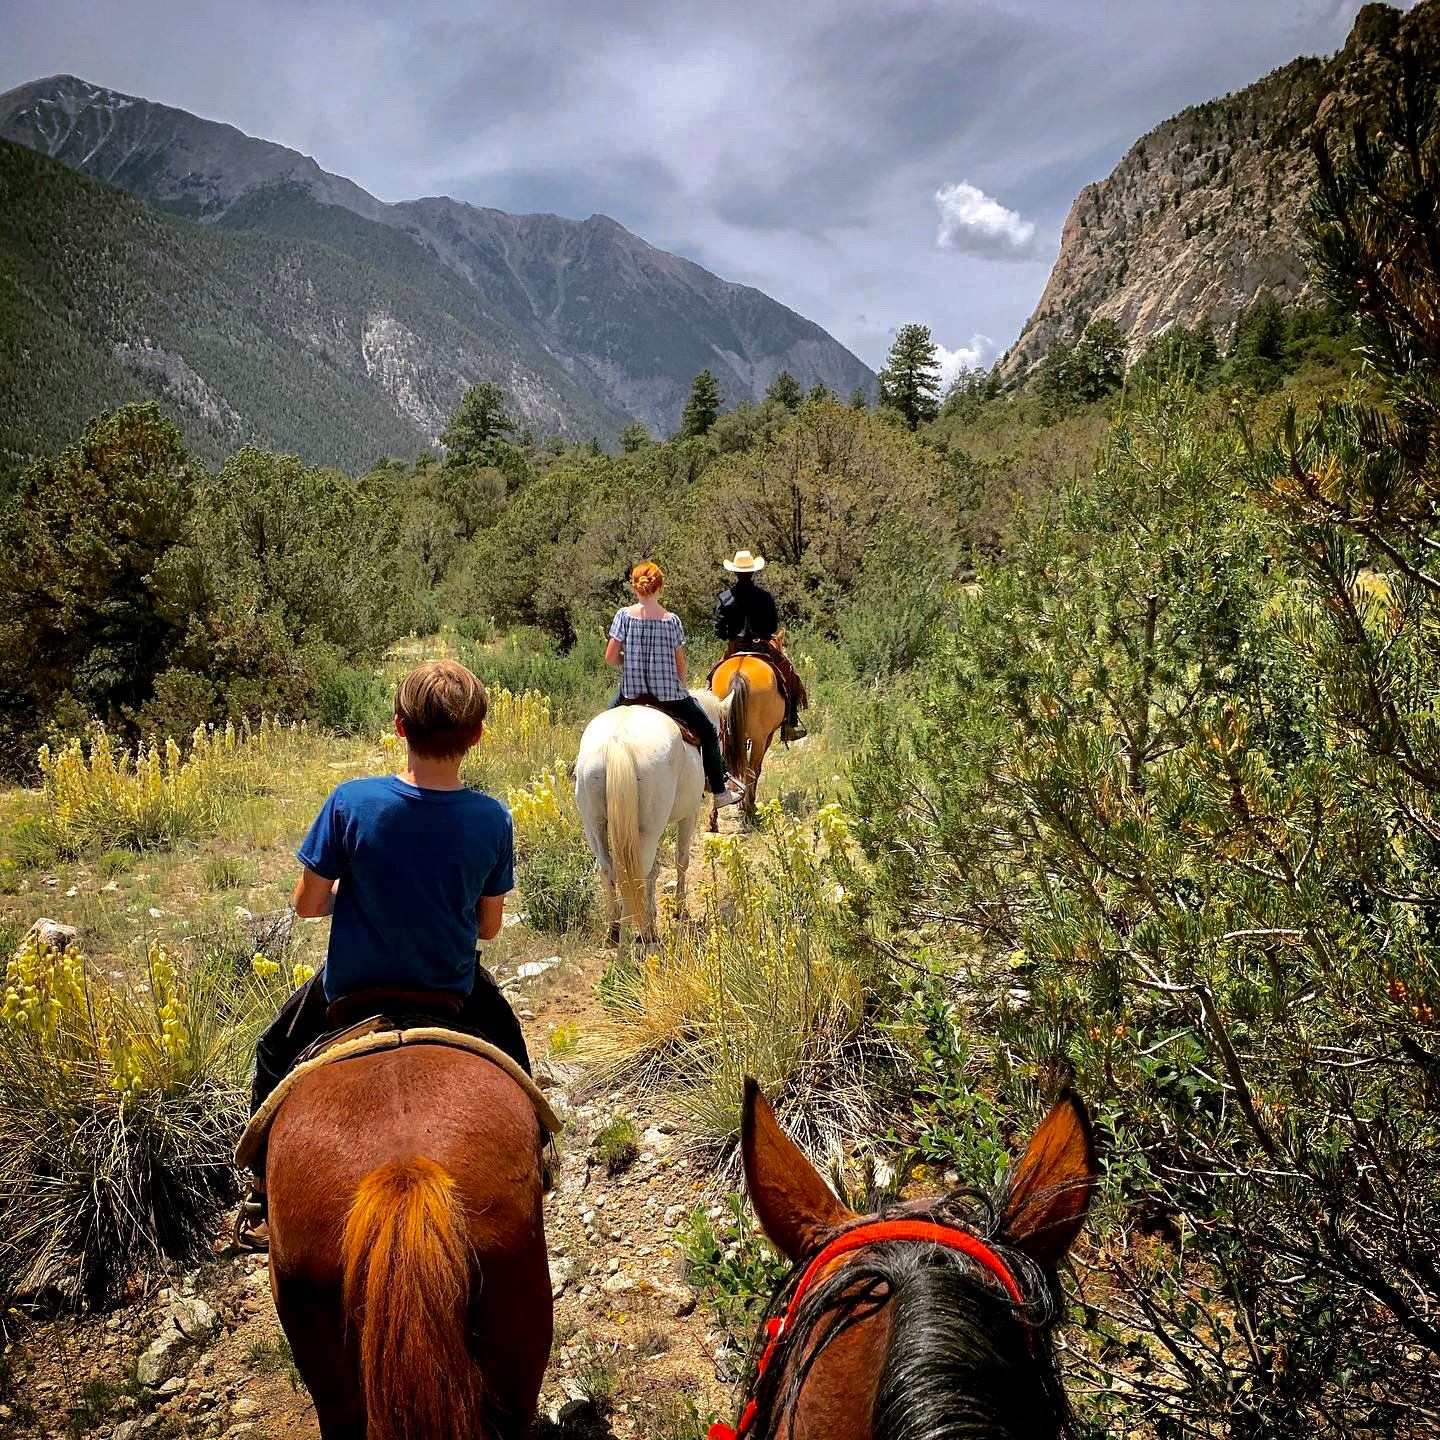 Image of the people horseback riding at Deer Valley Ranch in Colorado